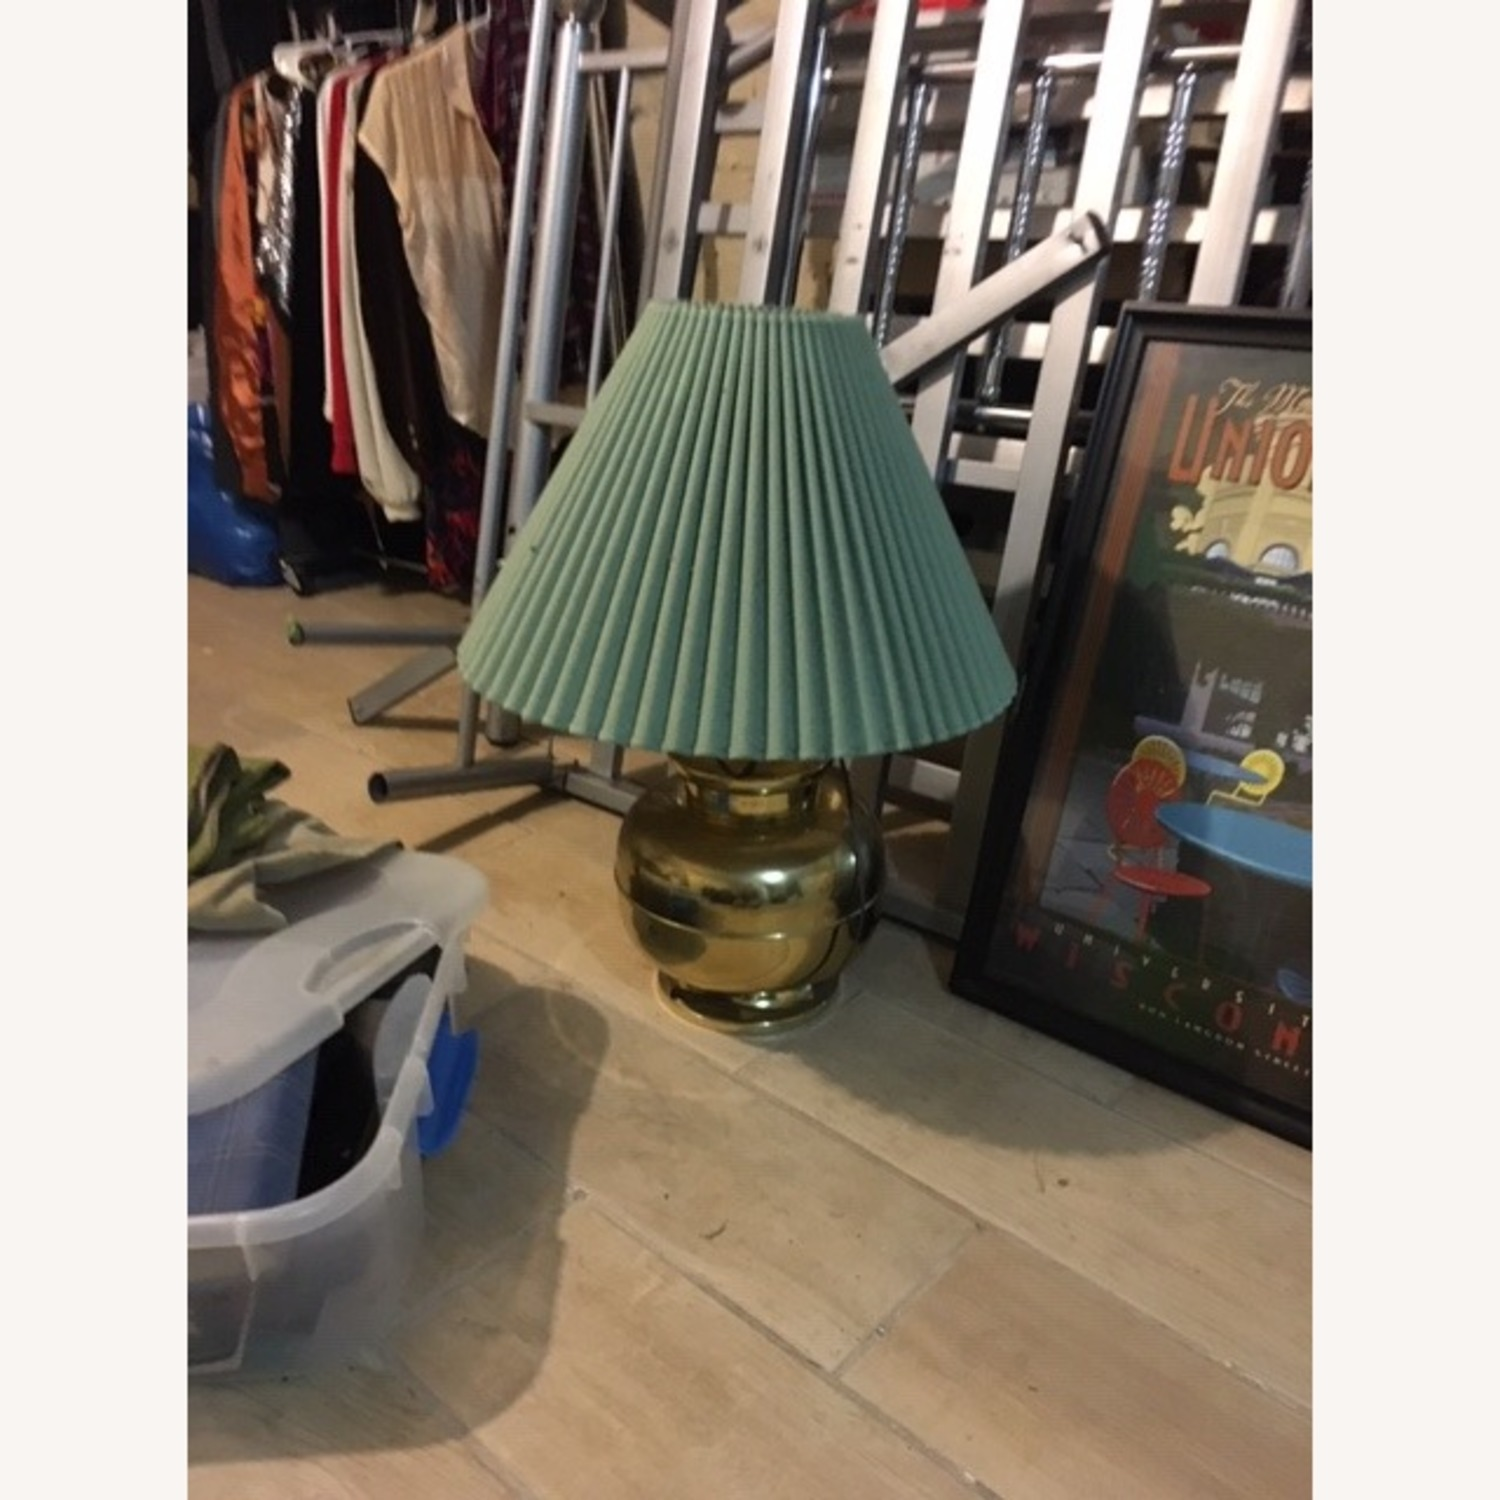 Anthropologie Vintage Table Lamp - image-2